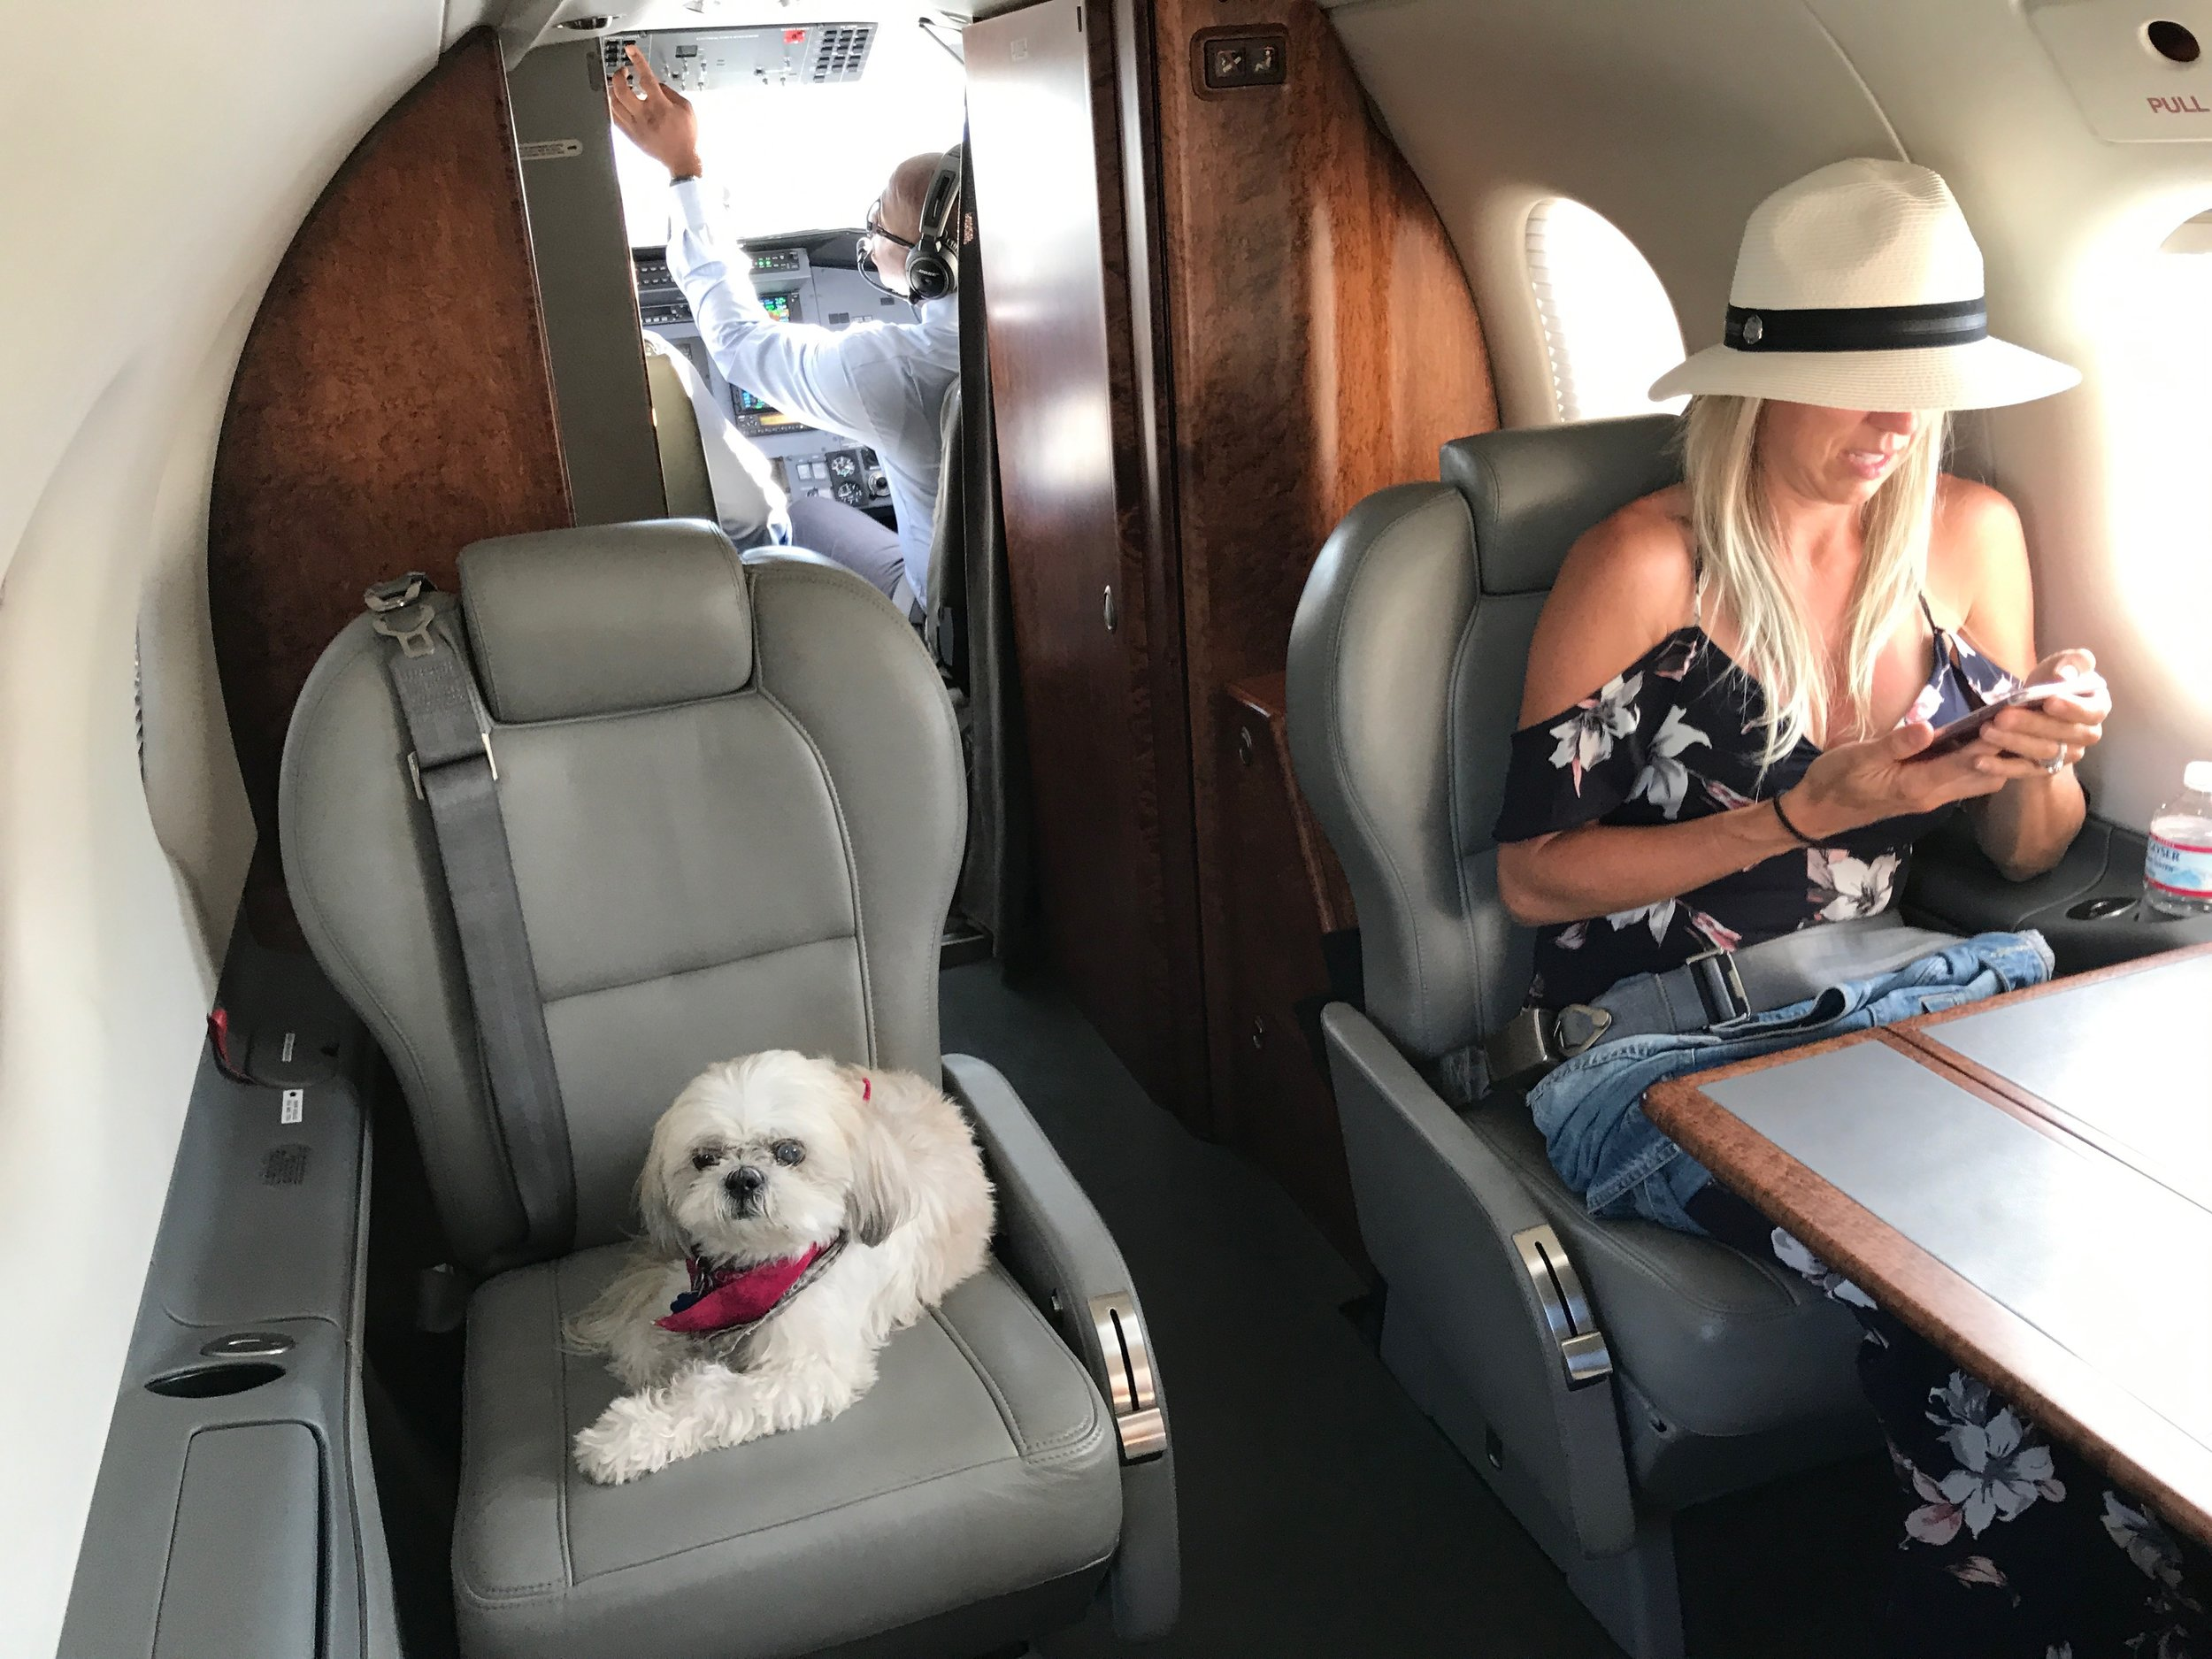 One place you don't have to worry about seat switchers: a private jet!